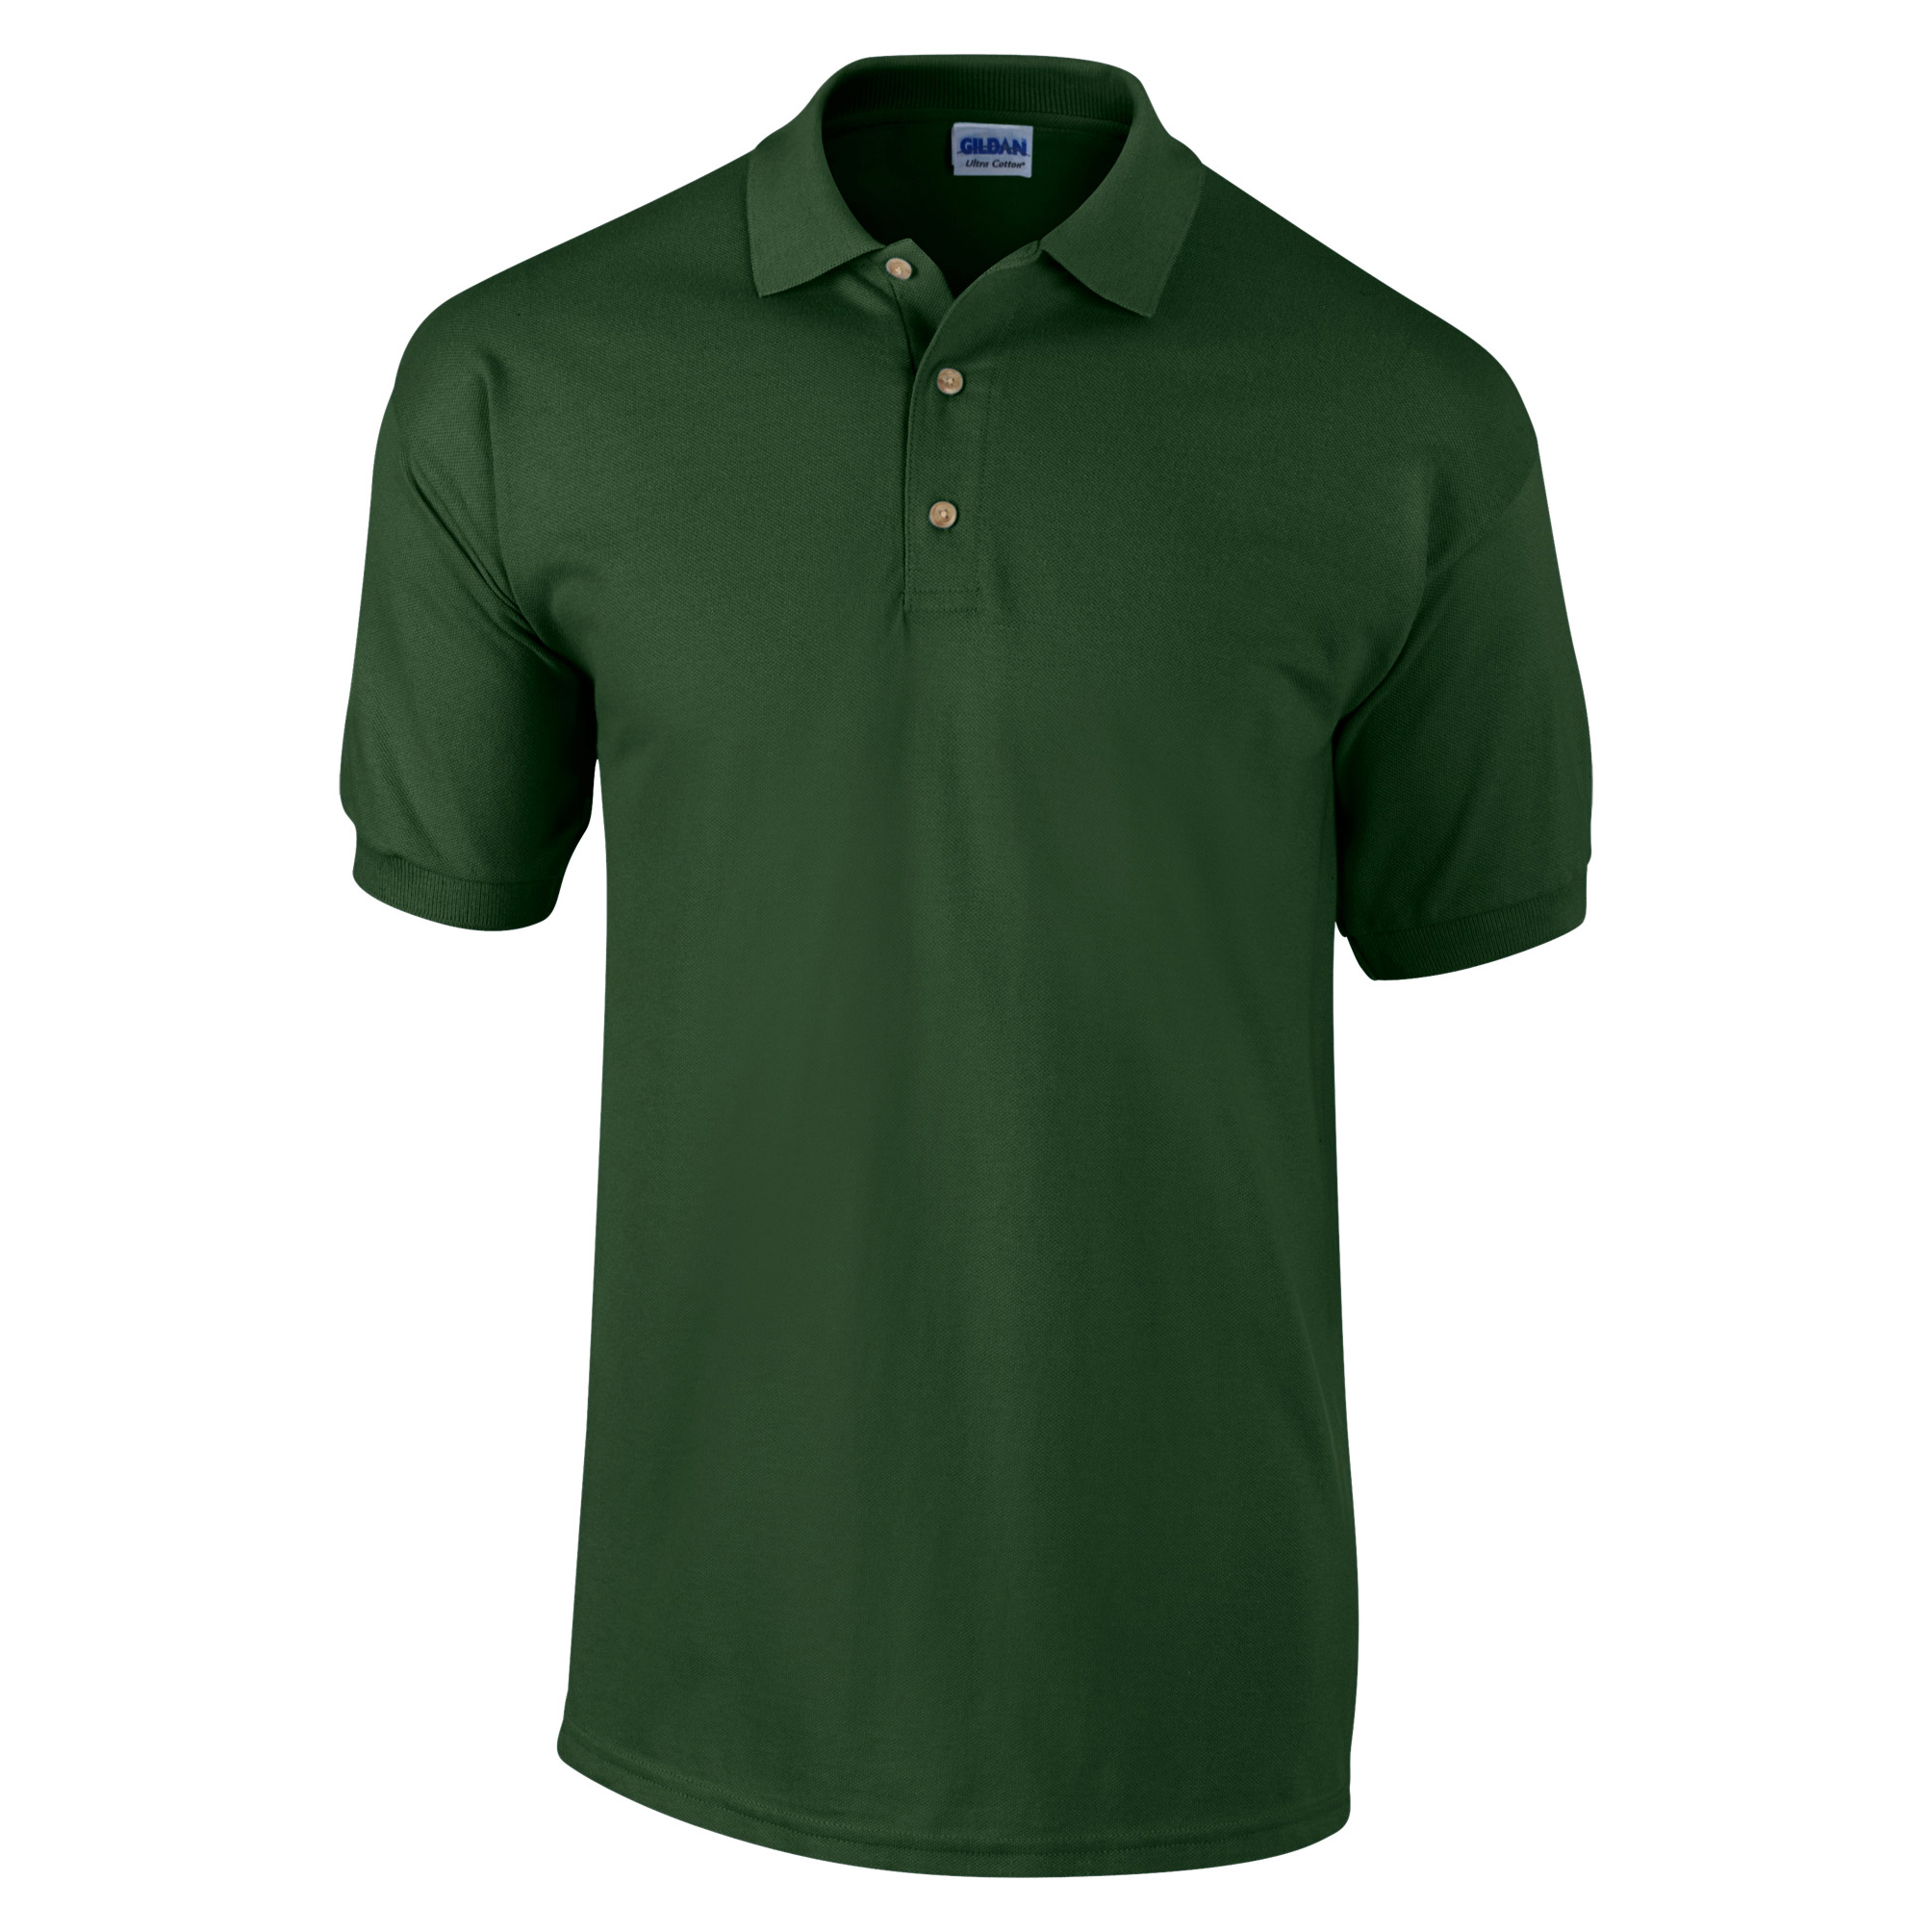 Gildan Ultra Cotton Pique Polo Shirt Premium Cotton Wide Colour Range